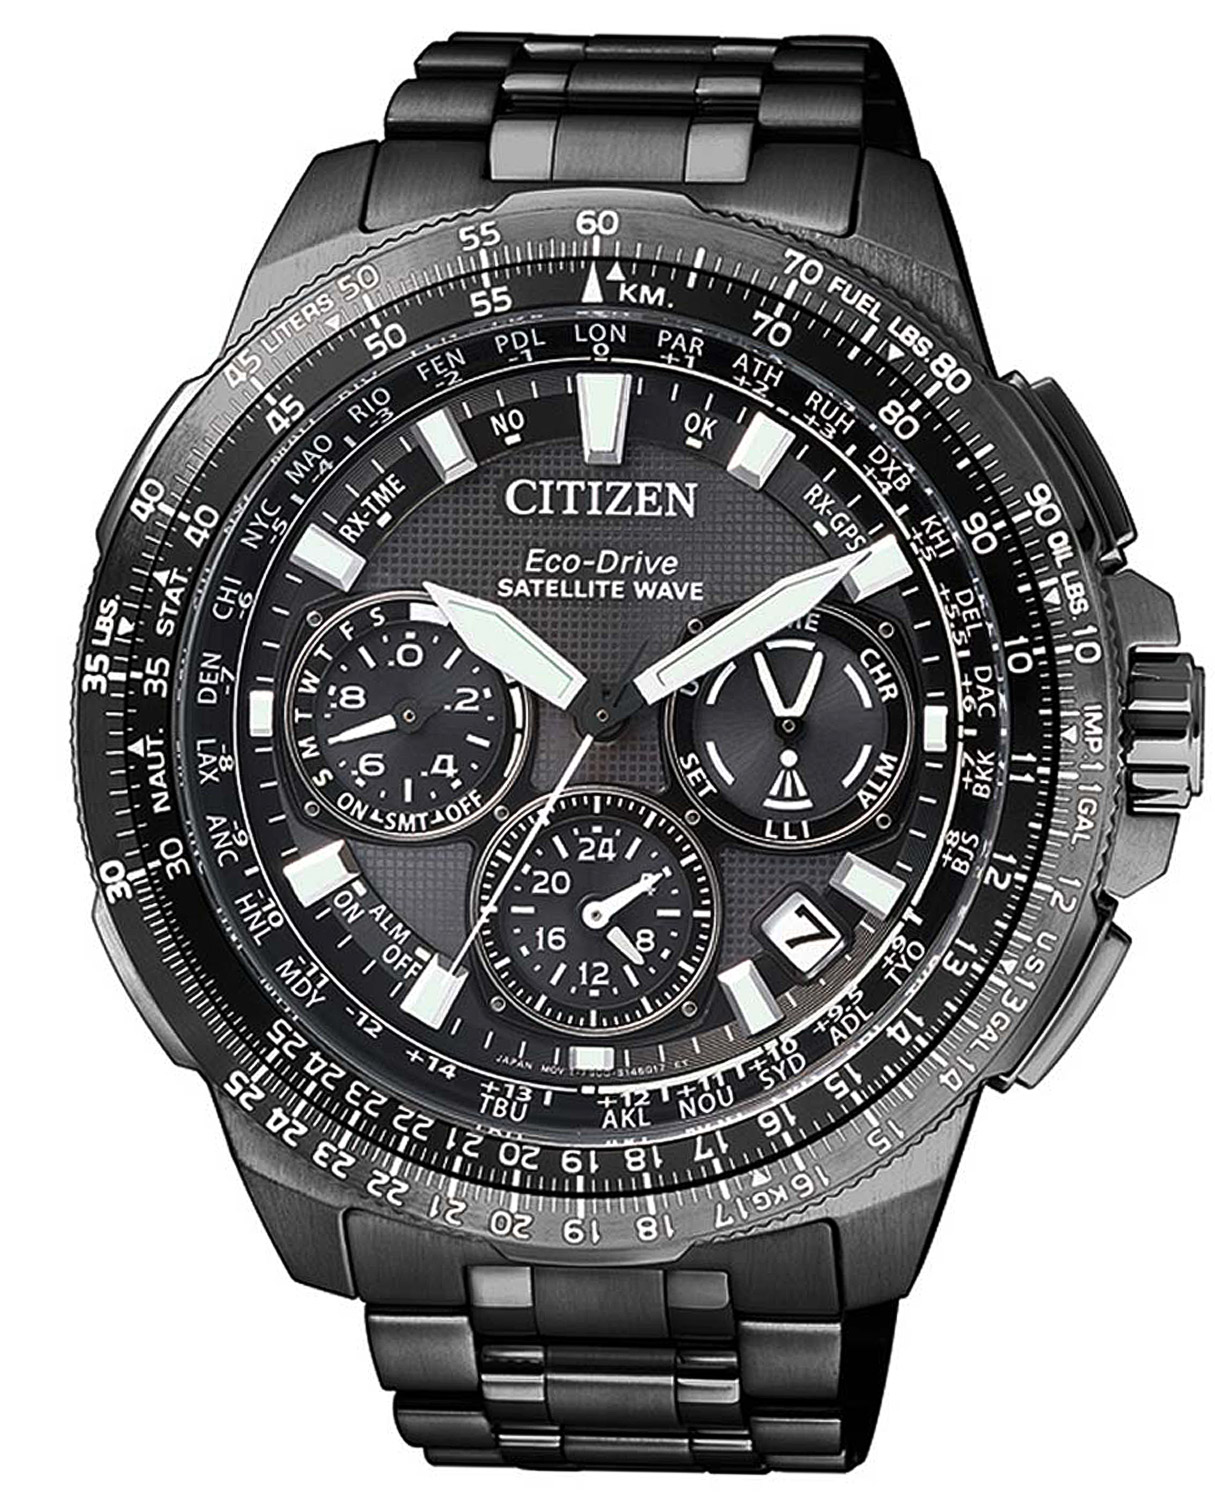 CITIZEN Eco-Drive Radio-Controlled at low prices • uhrcenter Shop a29c60cc03